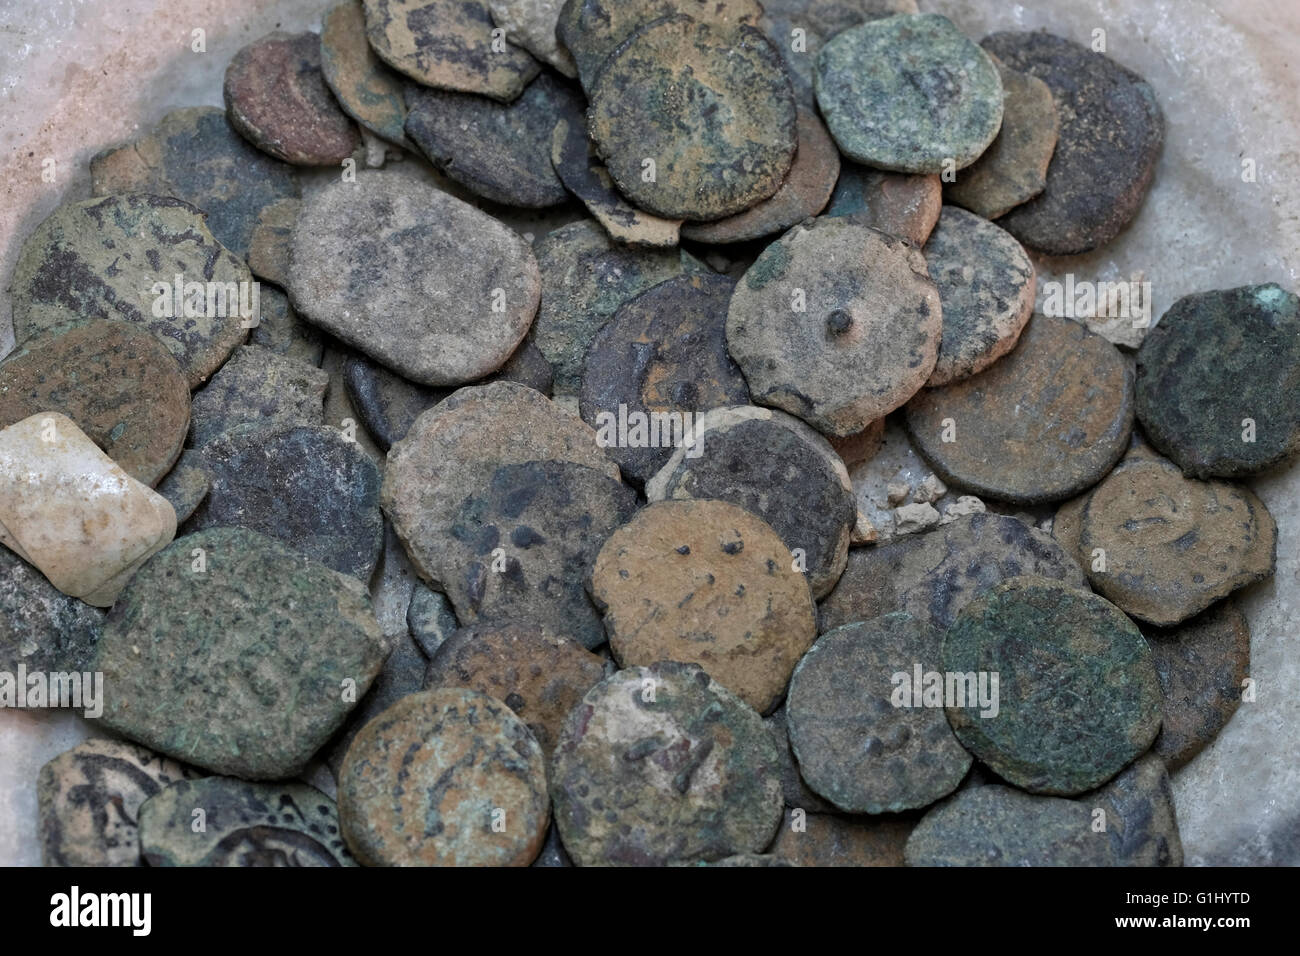 Stack of ancient coins at Baidun antiquity shop located on Via Dolorosa Old city East Jerusalem, Israel - Stock Image